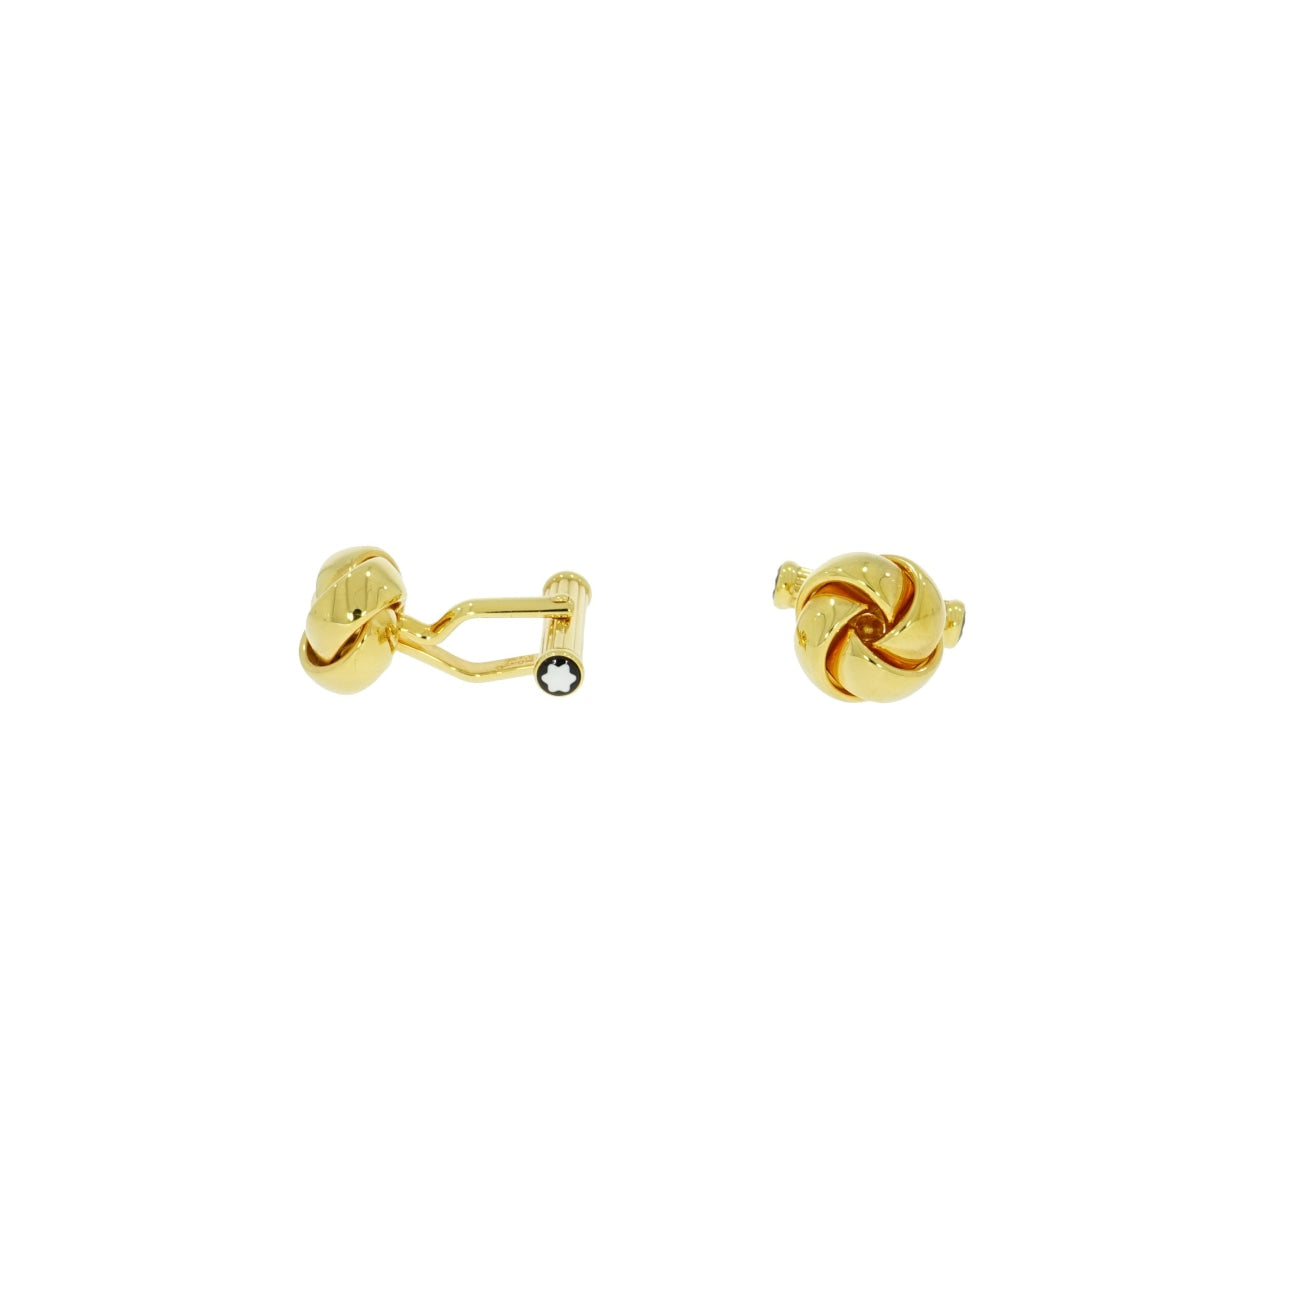 Montblanc Accessories - Classic Knot Cufflinks by Montblanc | Manfredi Jewels